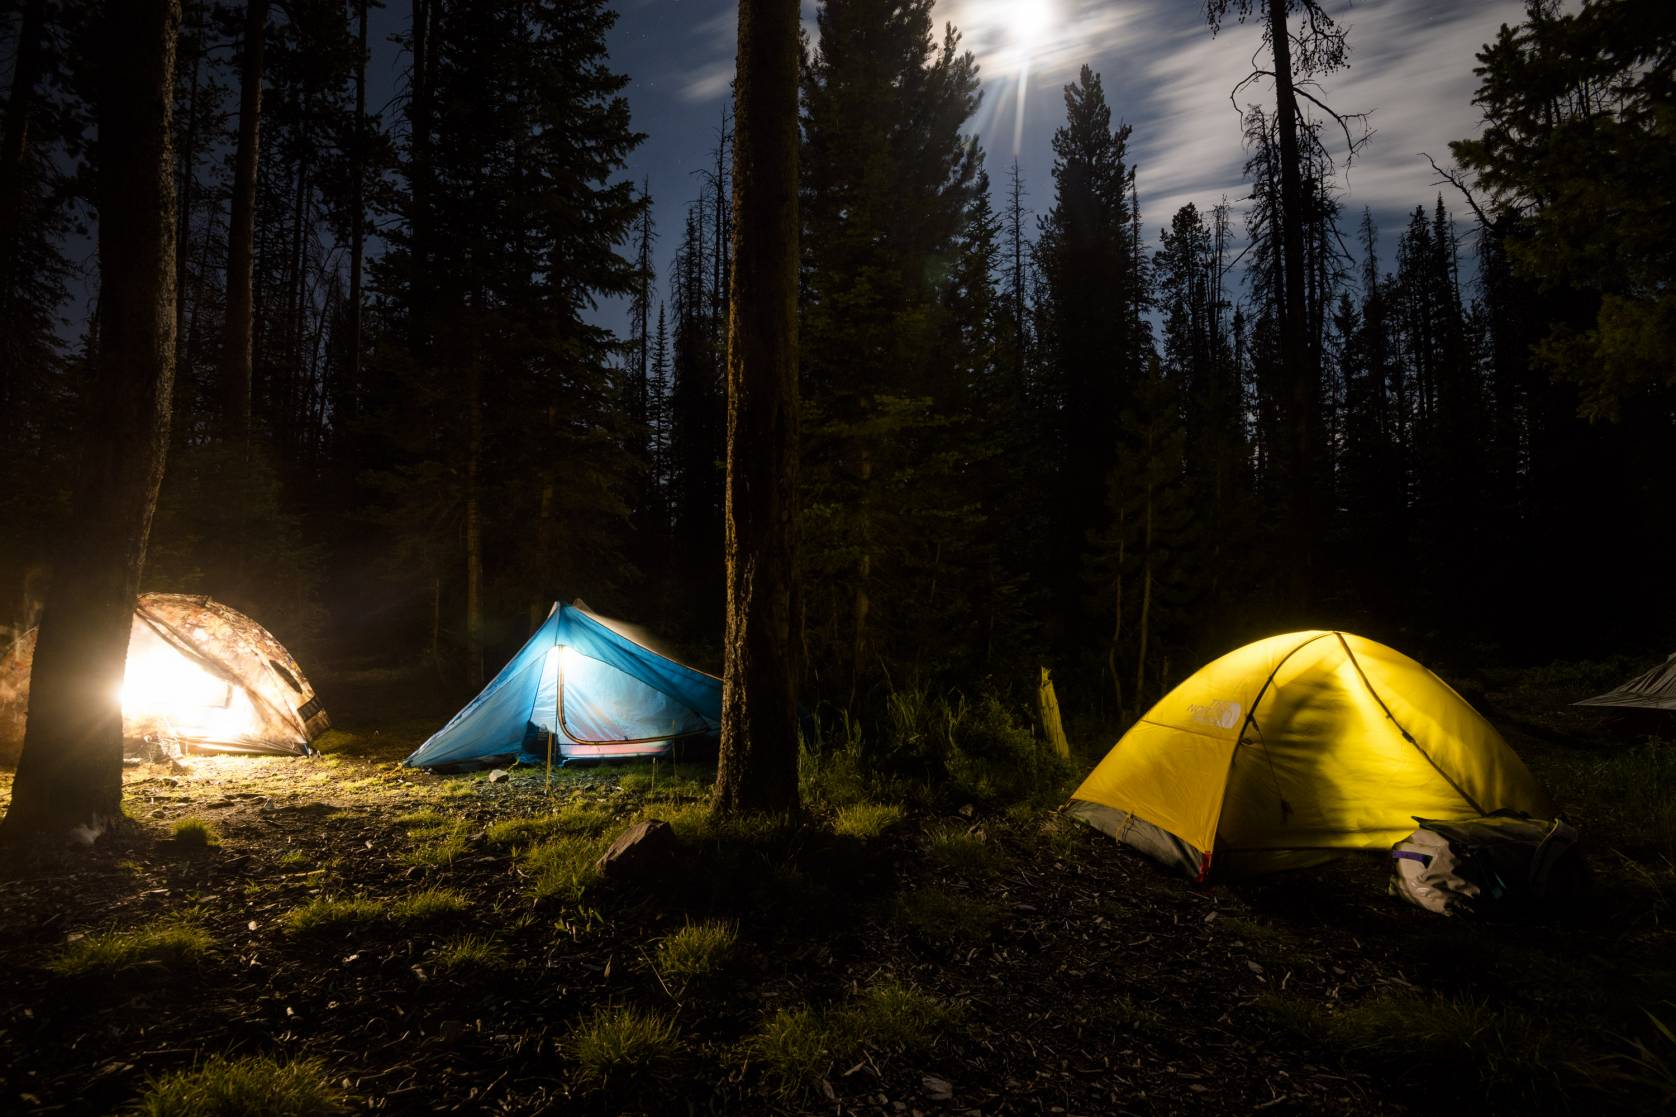 Camping Tent Night Forest Wilderness Backcountry